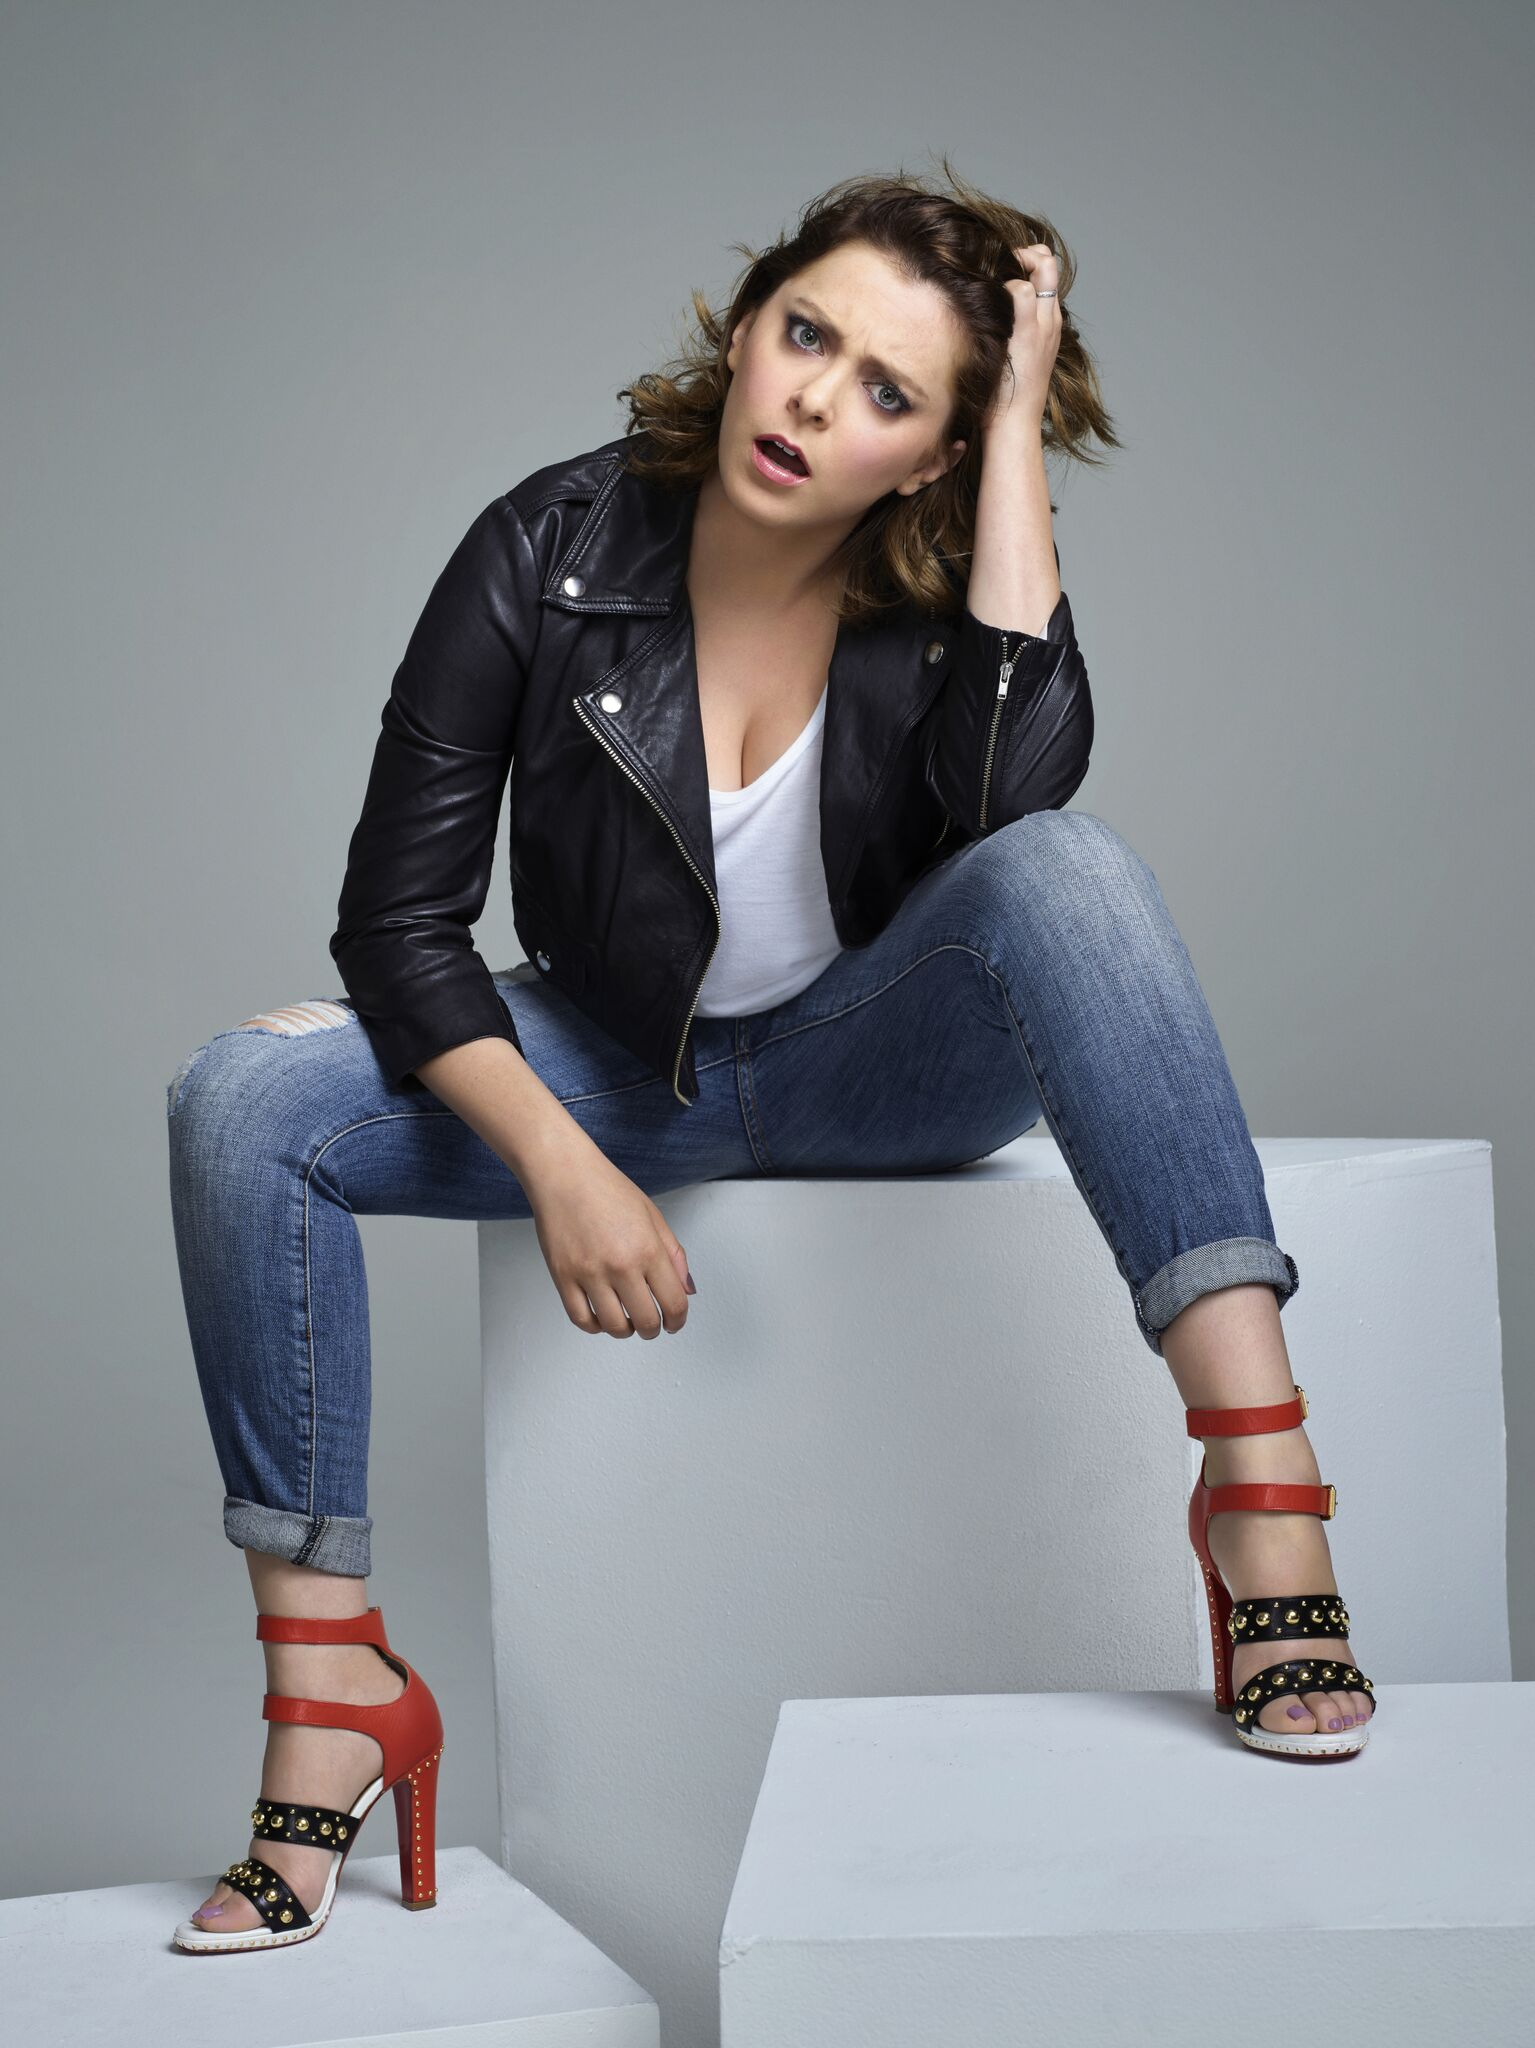 Rachel Bloom - Headshot (2).jpeg